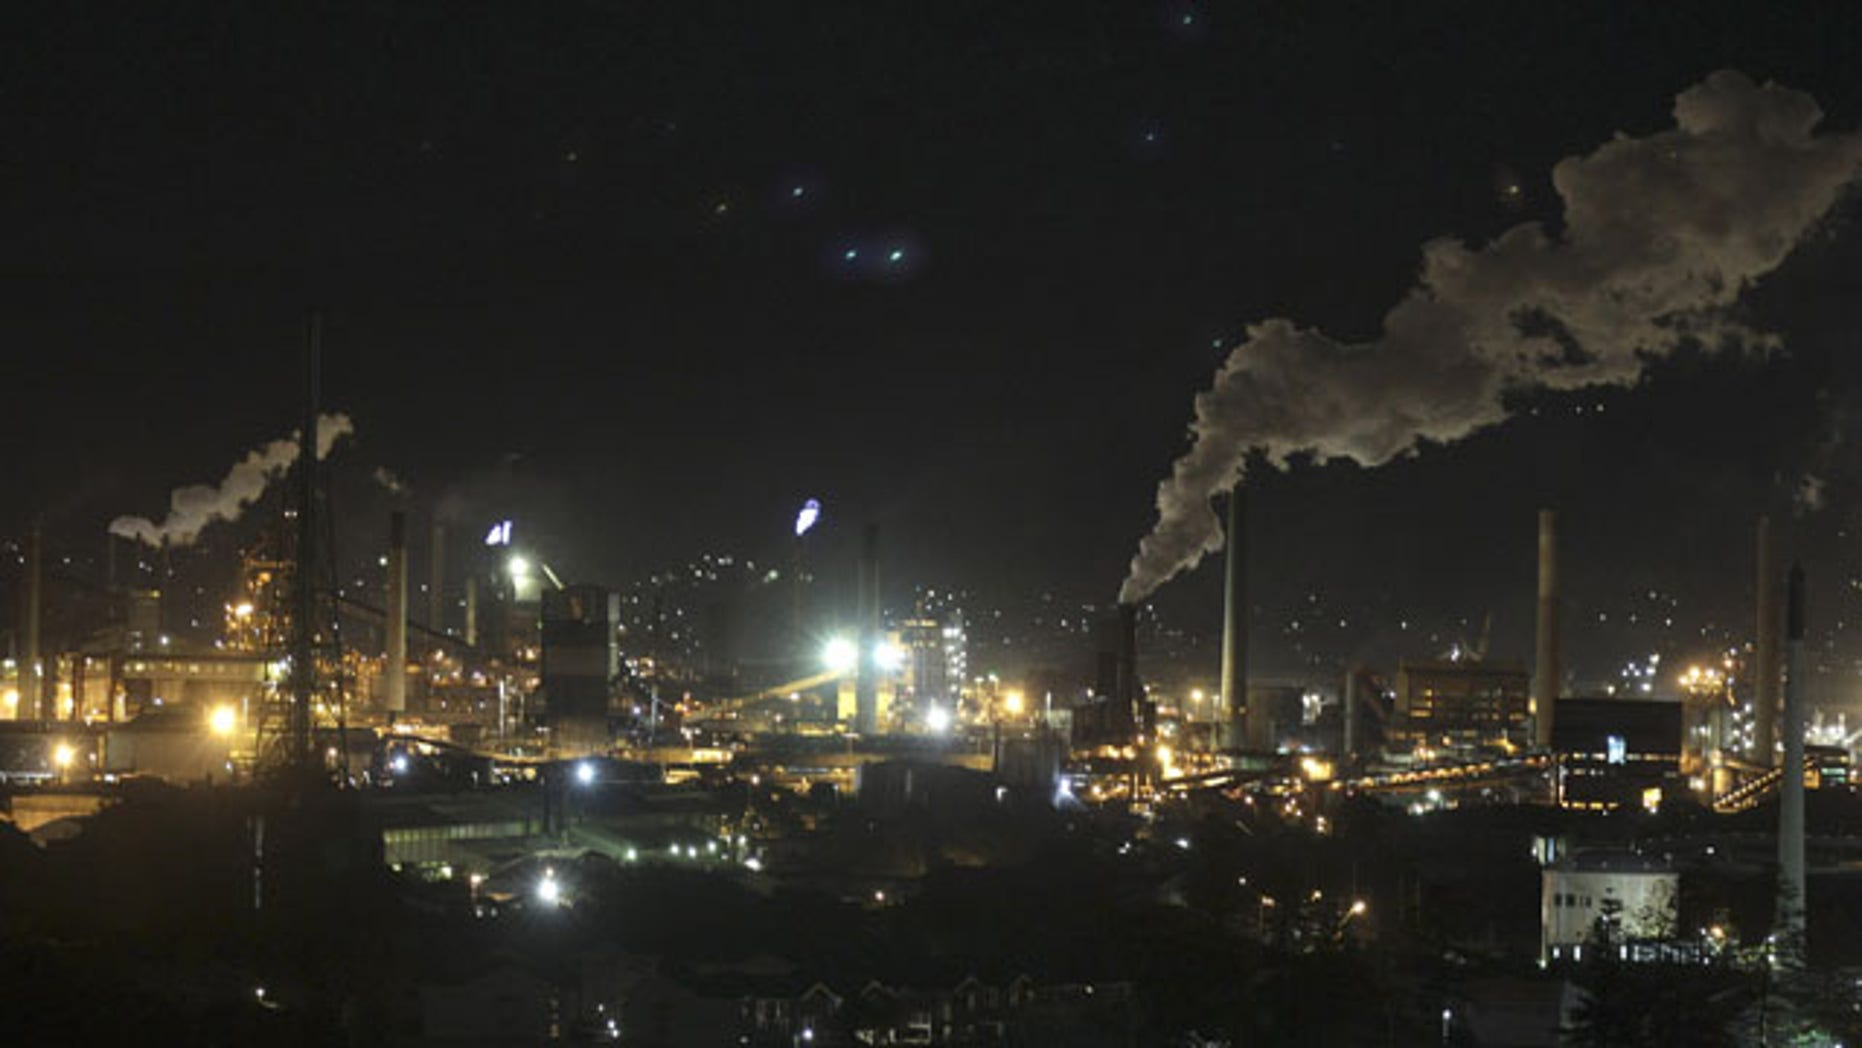 In this Friday, July 8, 2011 file photo, smoke bellows out of a chimney stack at Bluescope Steel works at Port Kembla, south of Sydney, Australia. (AP Photo/Rob Griffith, File)